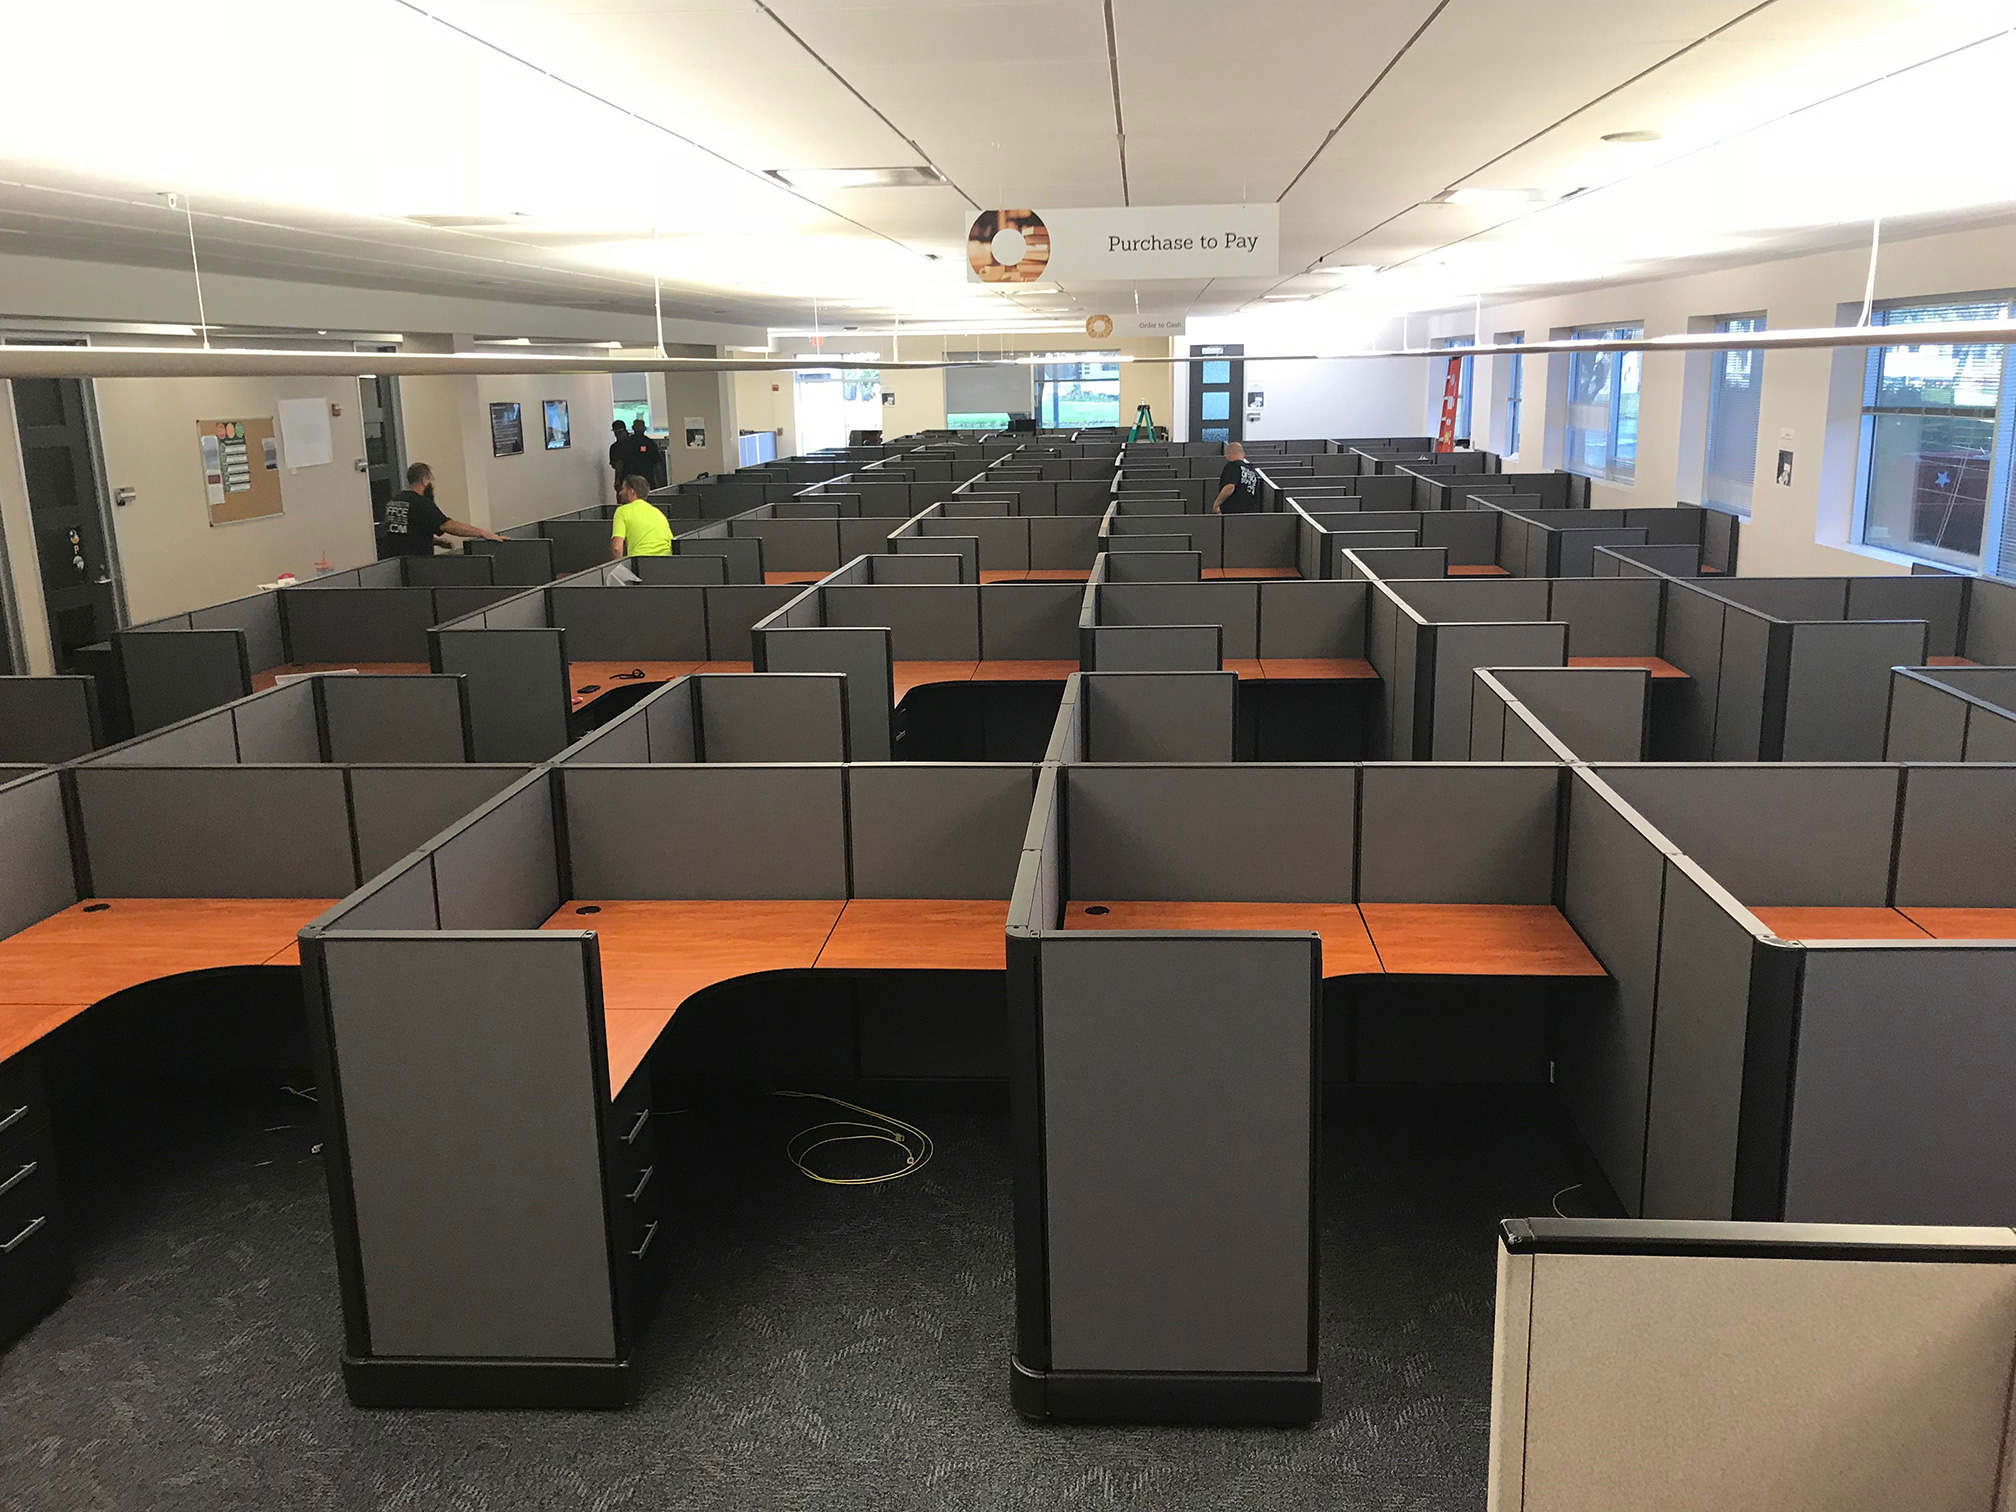 office-cubicles-for-sale-in-west-melbourne-florida-4.jpg